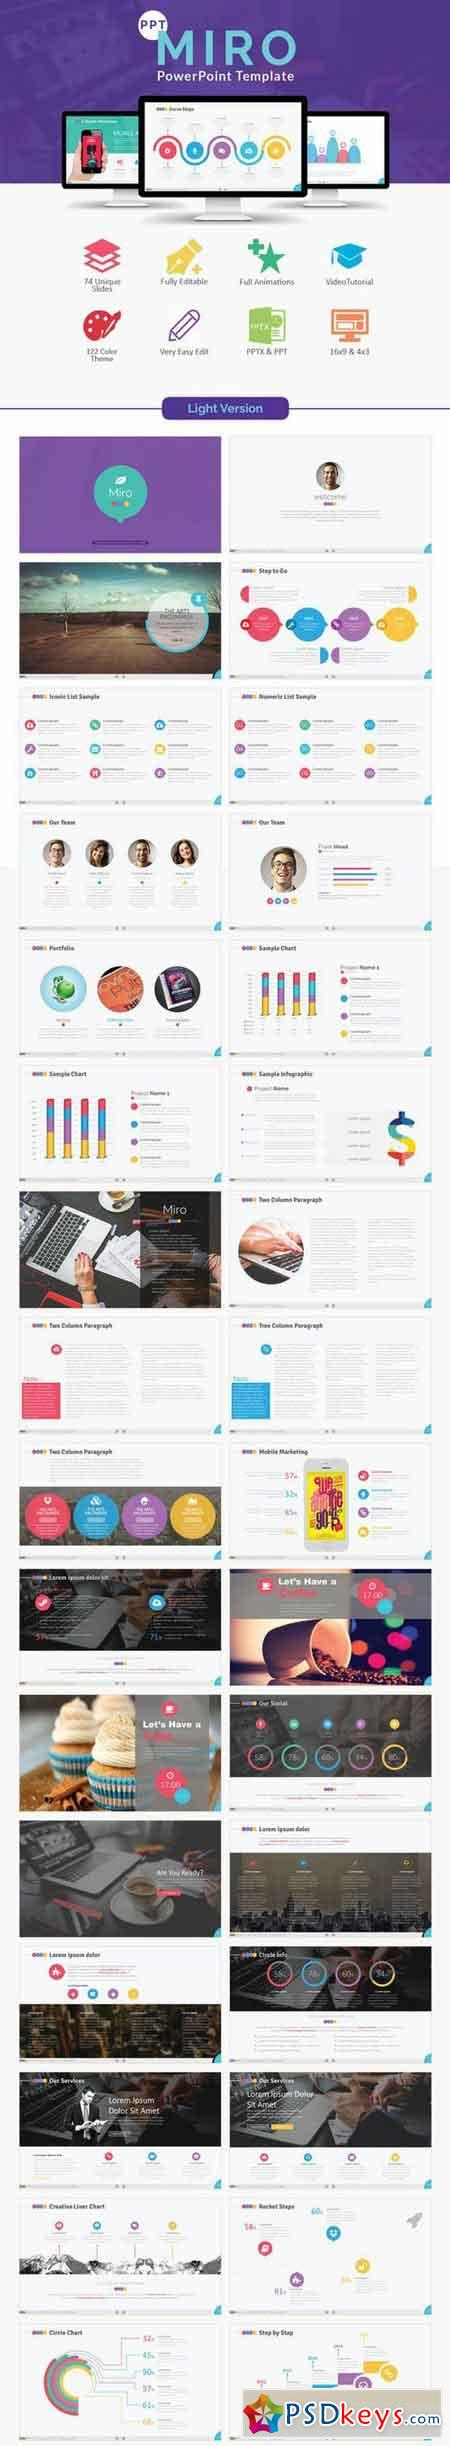 powerpoint templates torrents - miro powerpoint template 696572 free download